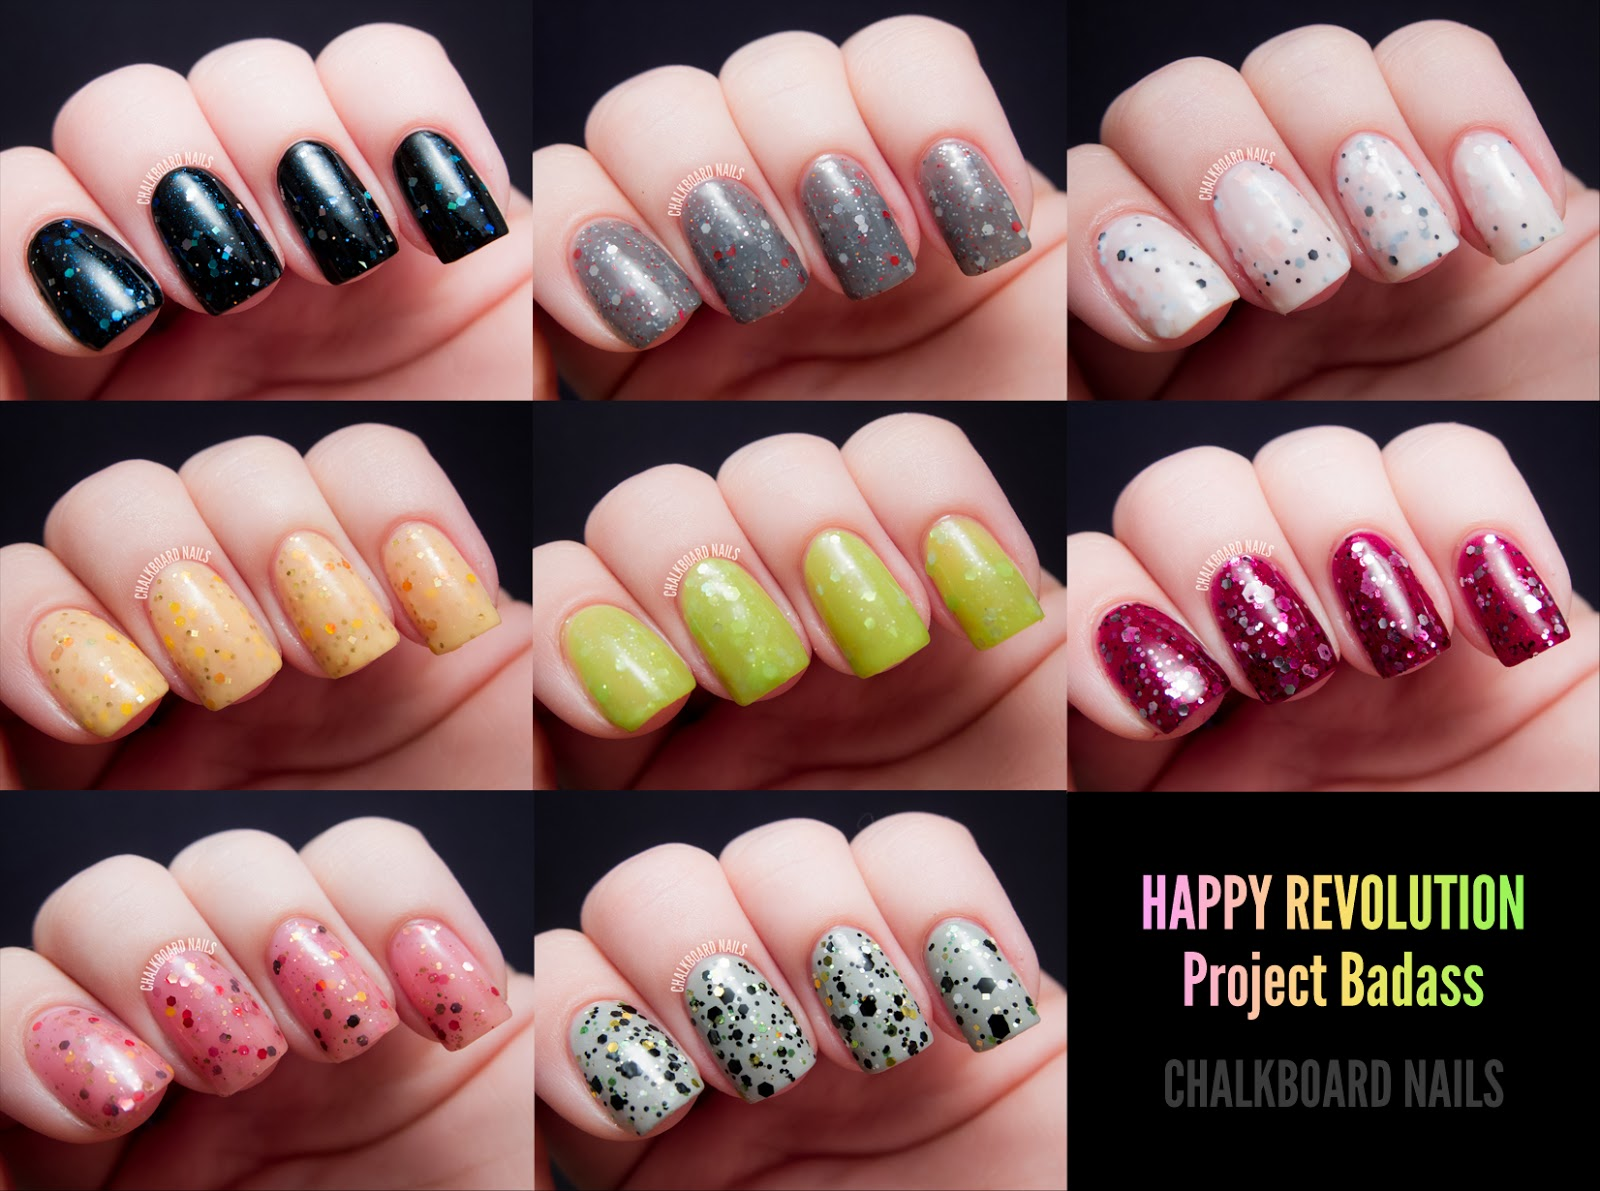 Happy revolution project badass collection chalkboard nails happy revolution project badass via chalkboard nails prinsesfo Image collections